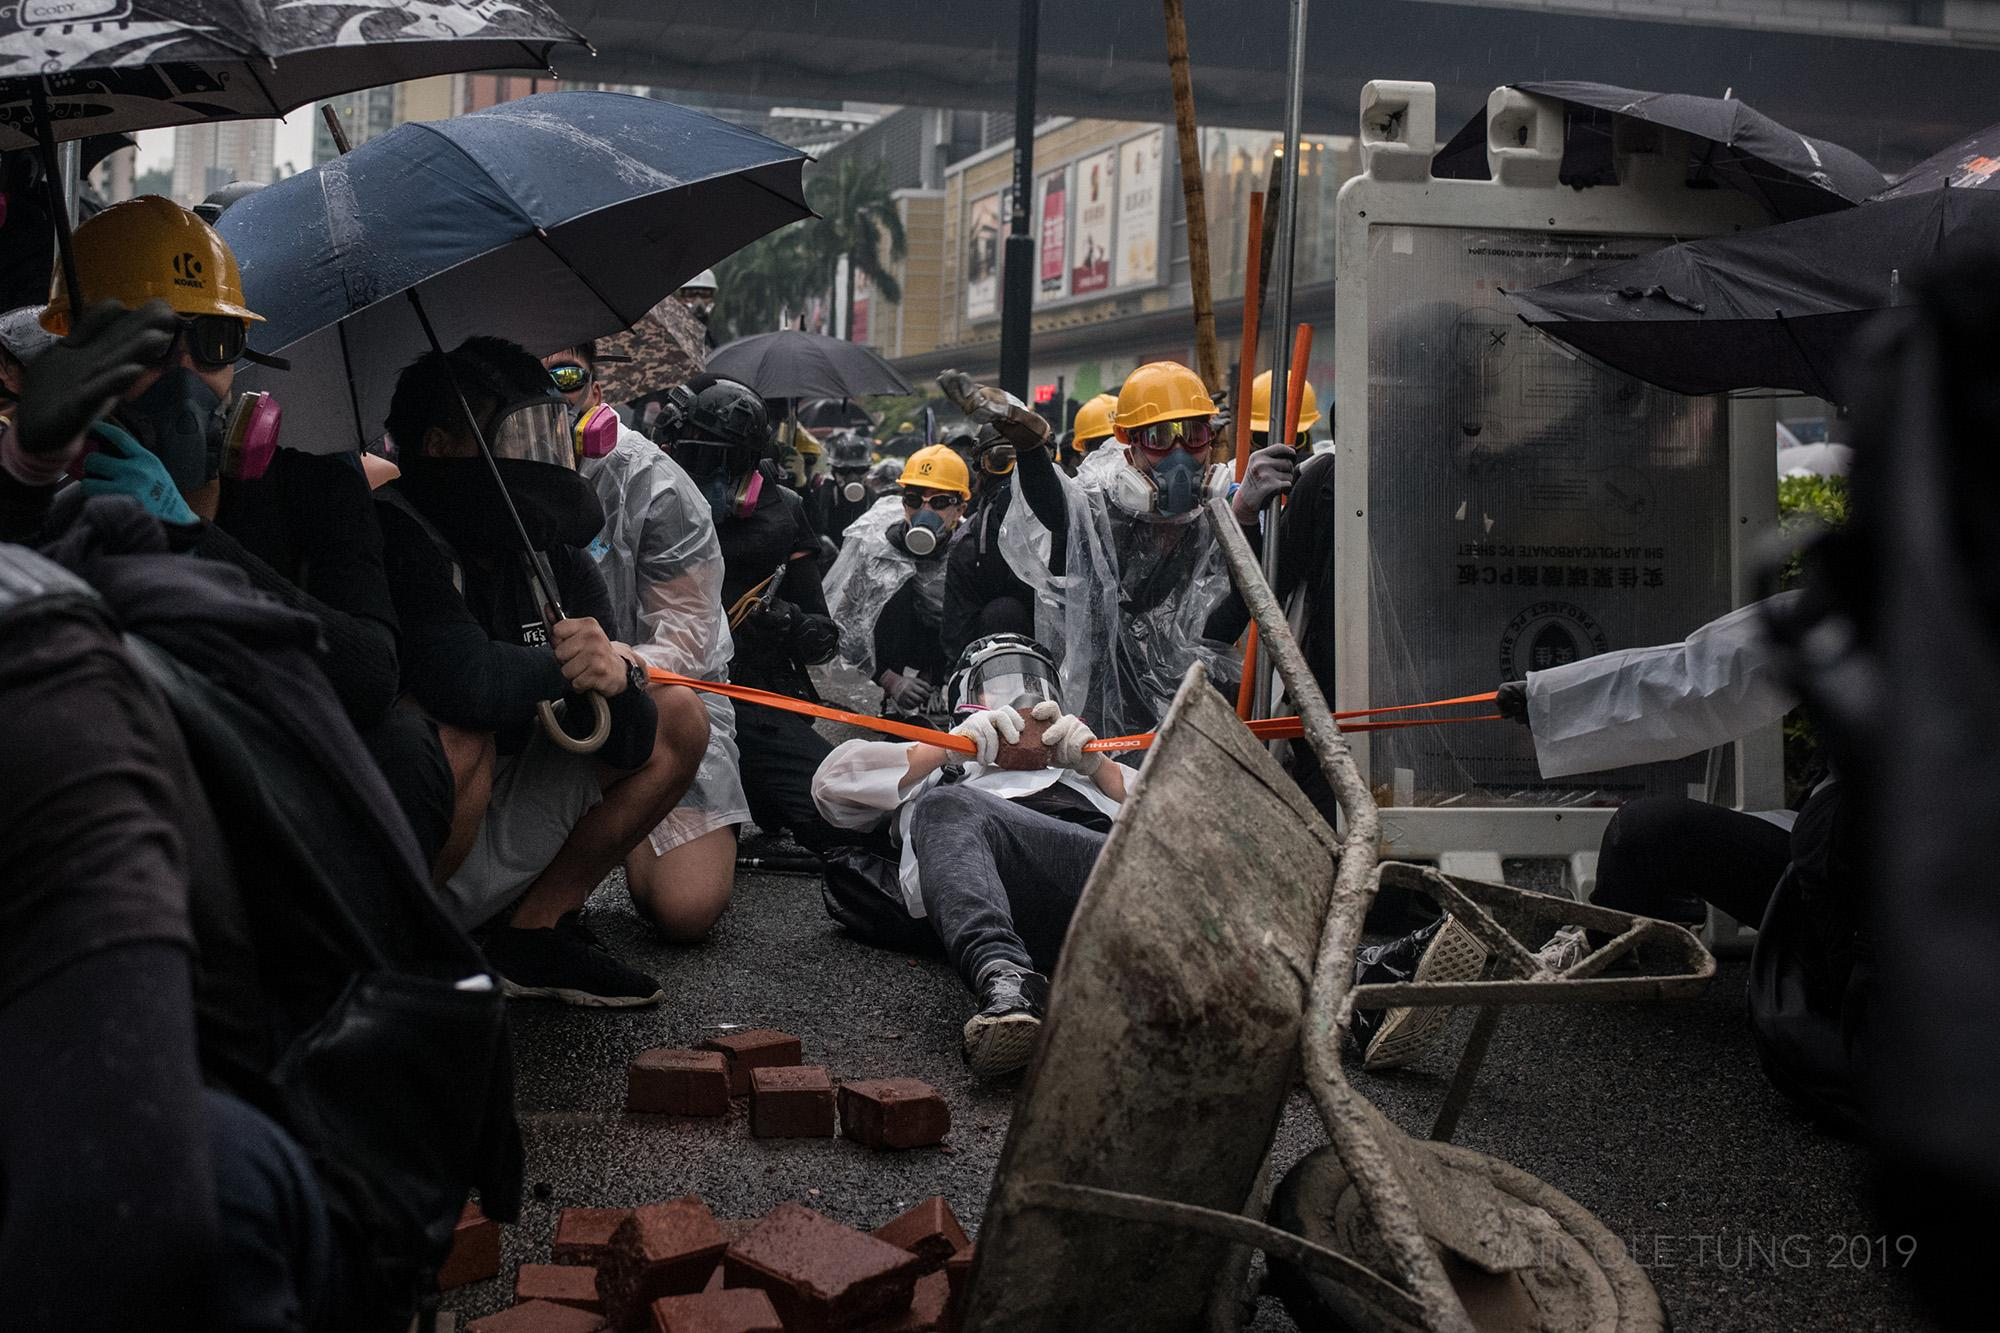 Protestors launch a brick from a large sling shot as they face off with riot police in Hong Kong, S.A.R. following the end of an anti-government rally. August 2019.